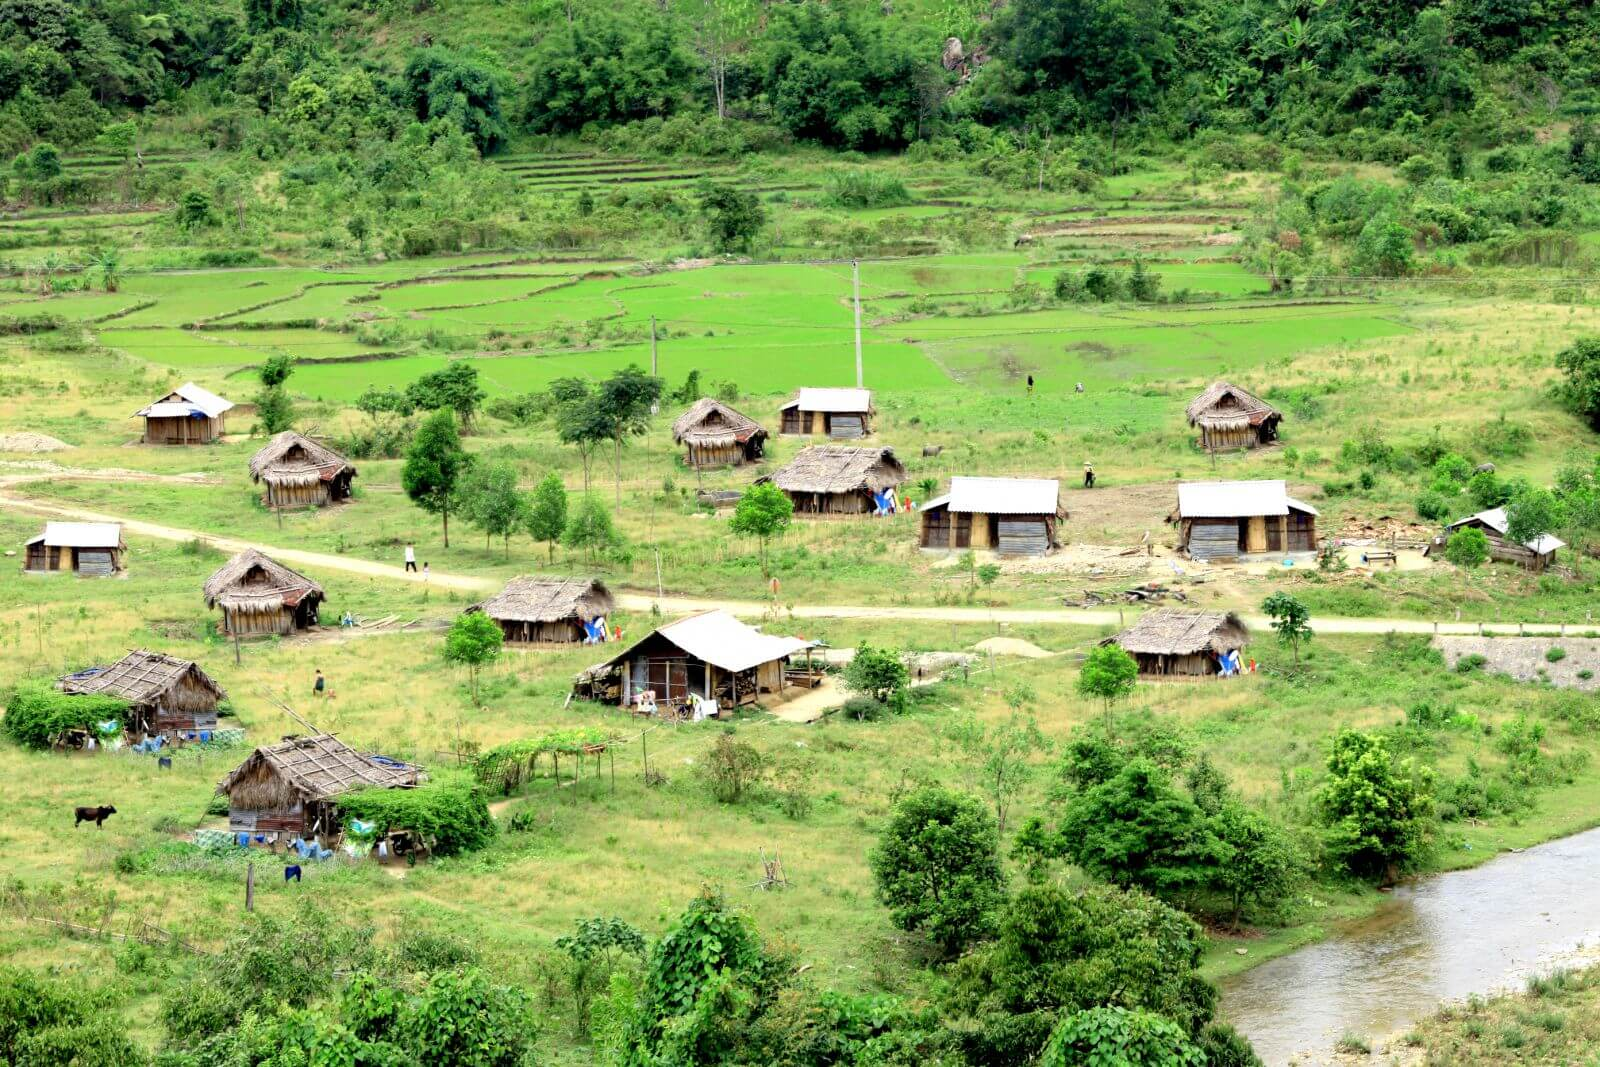 A Luoi Village – A Brand New Destination for Ecological Travel in Hue, Vietnam 1